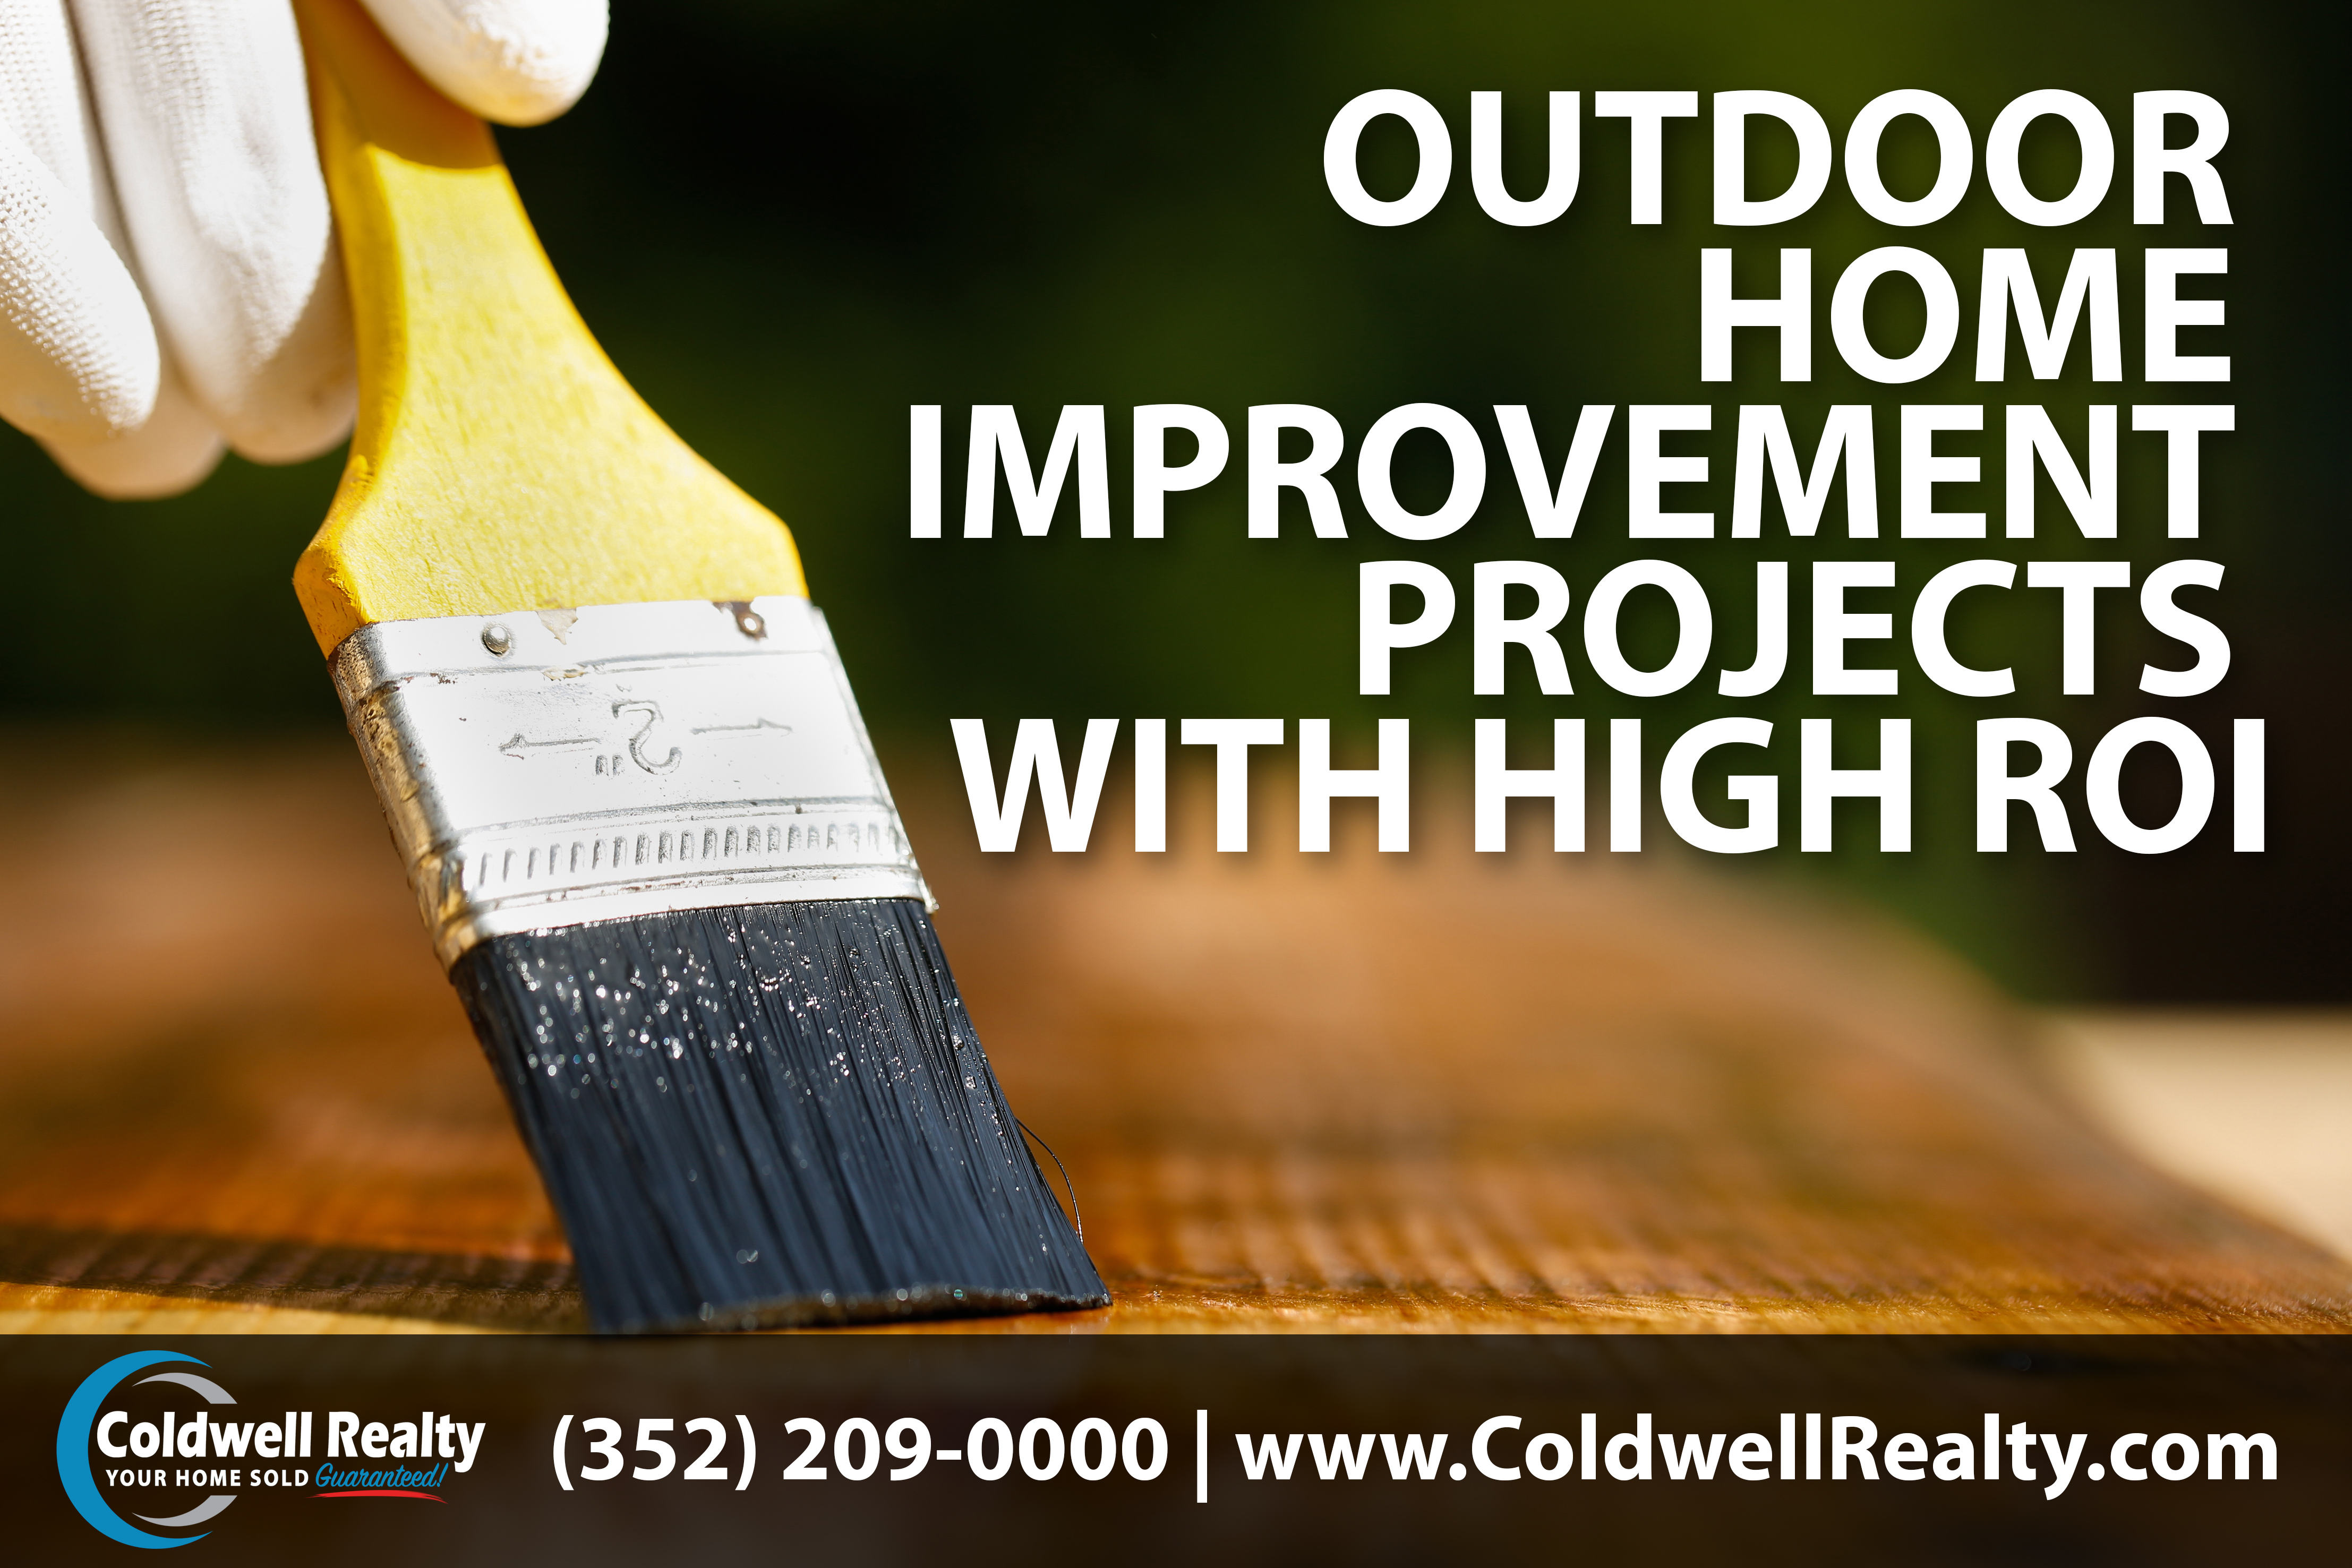 OUTDOOR HOME IMPROVEMENT PROJECTS WITH HIGH ROI.jpg